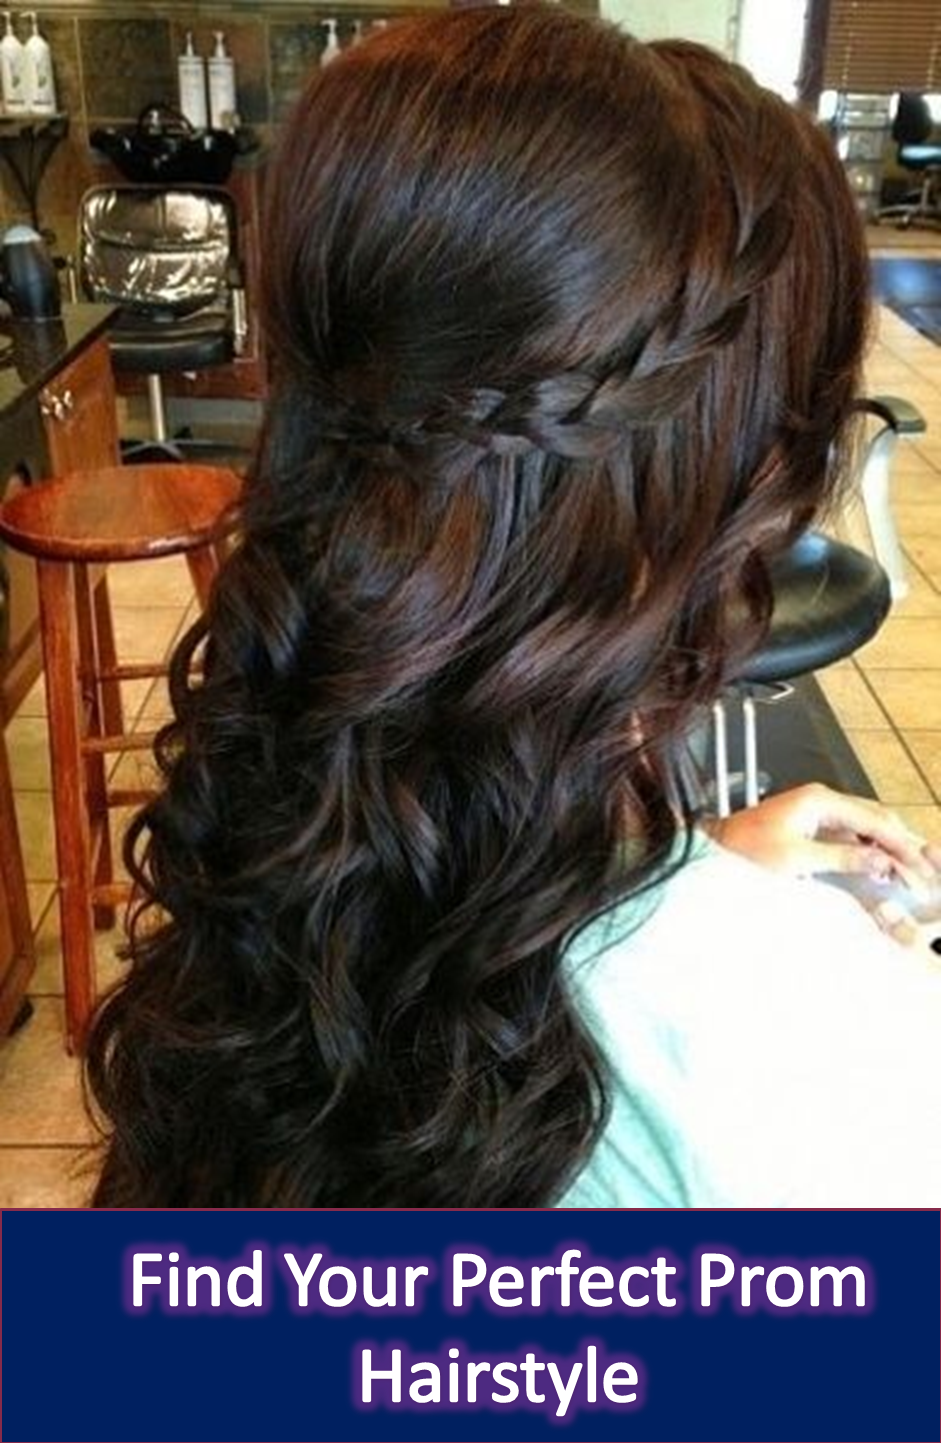 Find your perfect prom hairstyle for a head turning effect in the find your perfect prom hairstyle for a head turning effect in the party solutioingenieria Image collections